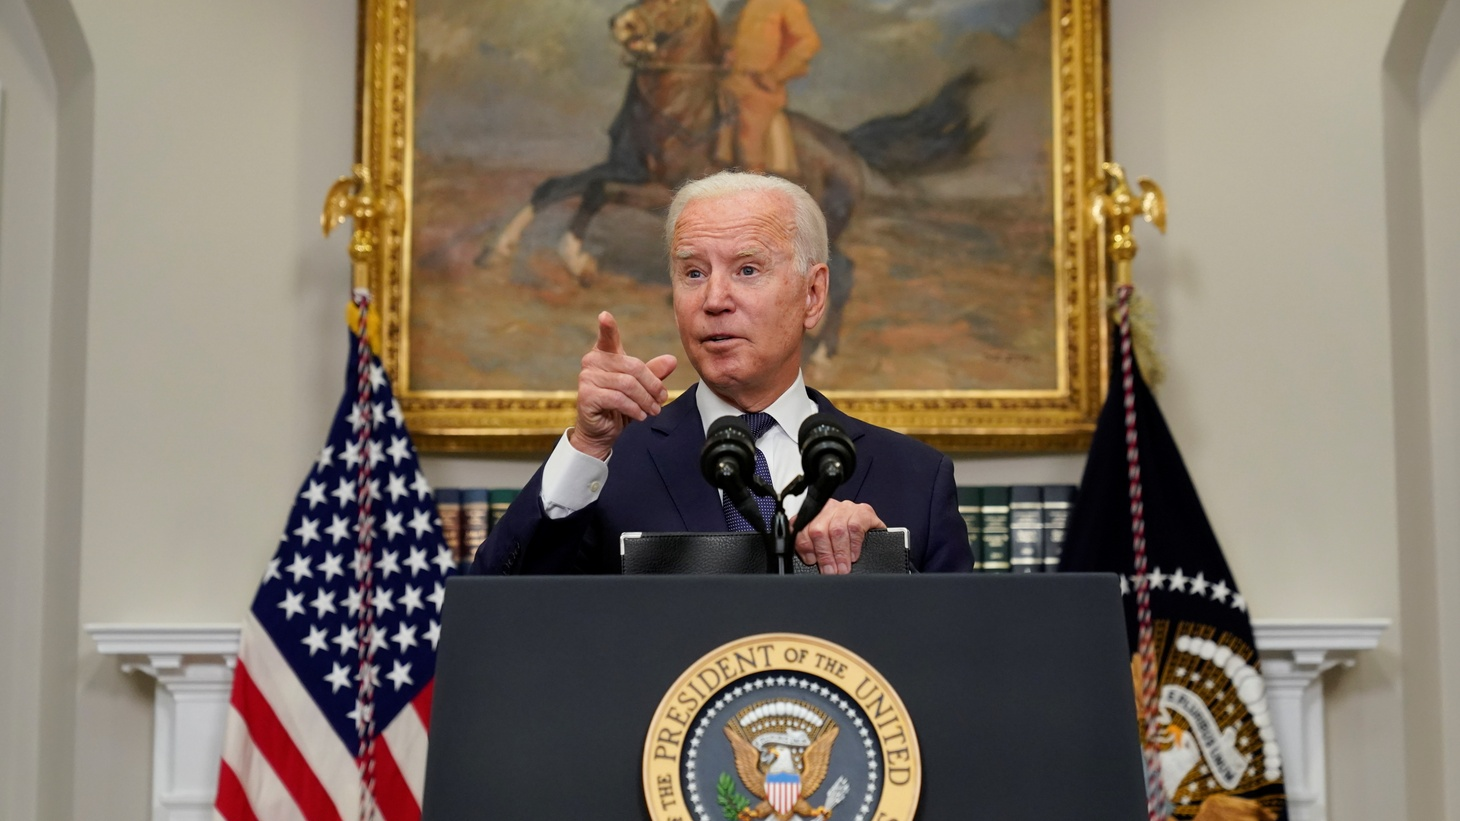 U.S. President Joe Biden gestures as he answers questions about Hurricane Henri and the evacuation of Afghanistan during a news conference in the Roosevelt Room of the White House in Washington, D.C., U.S. August 22, 2021.